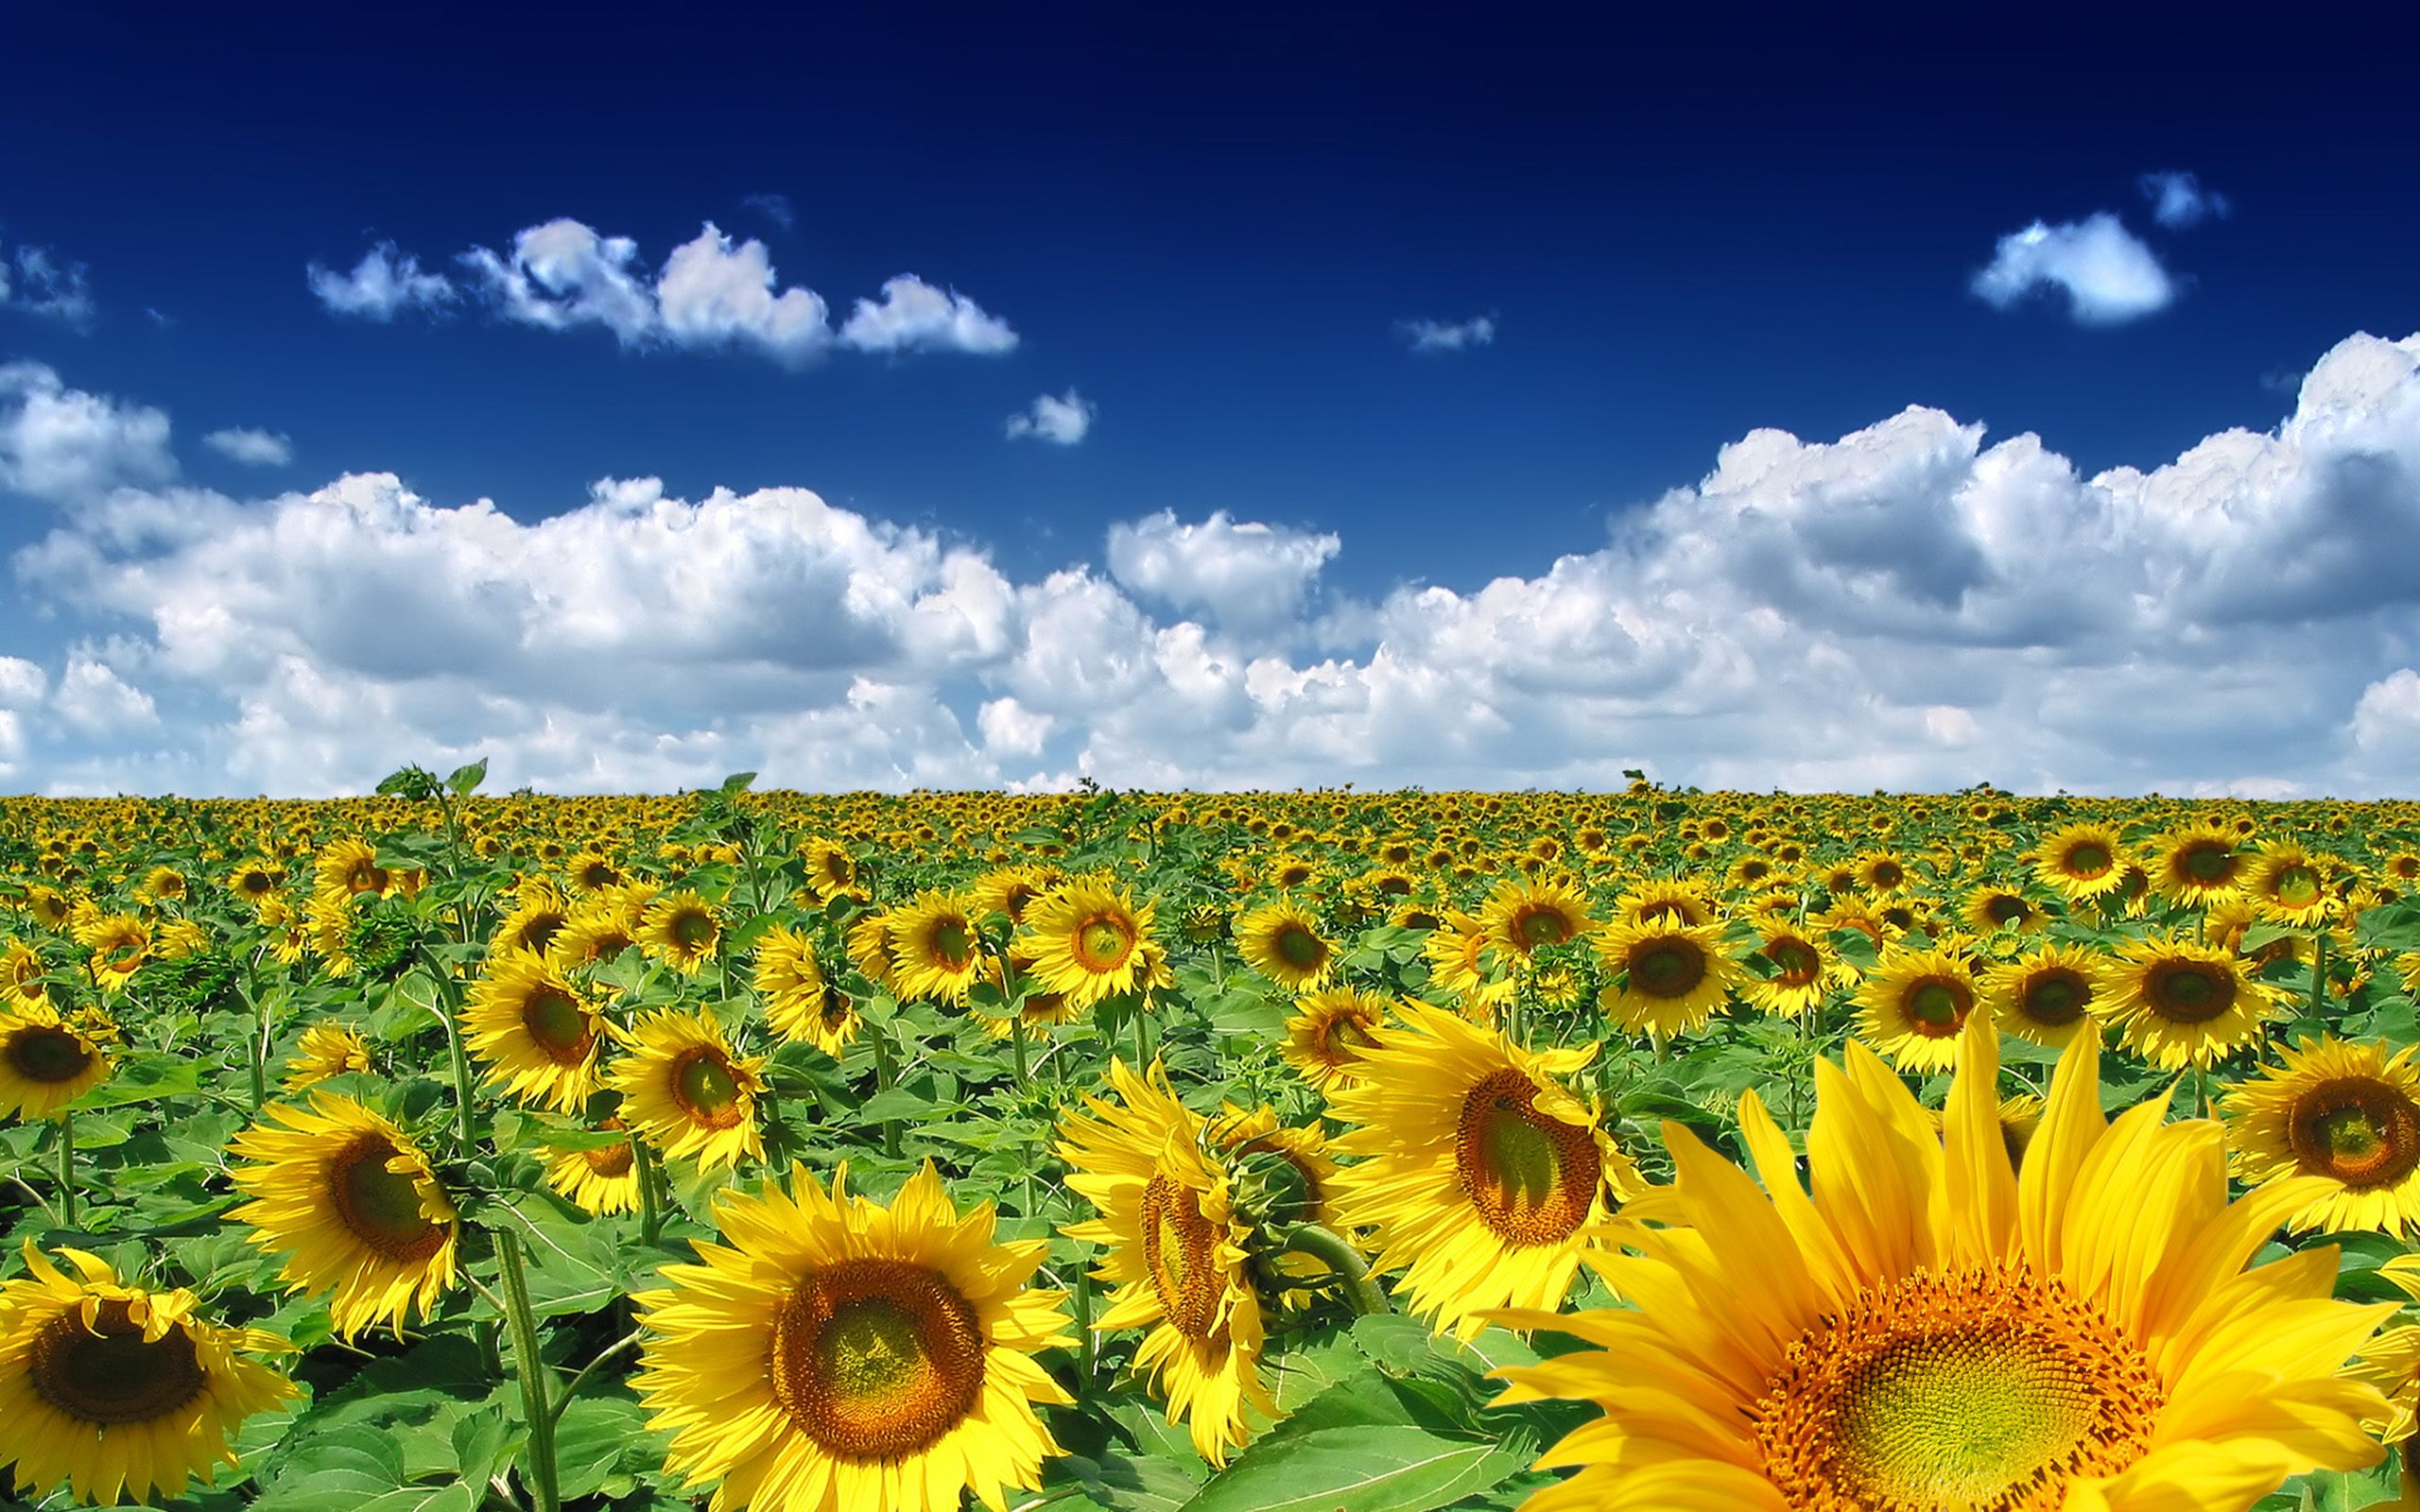 sunflowers field hd